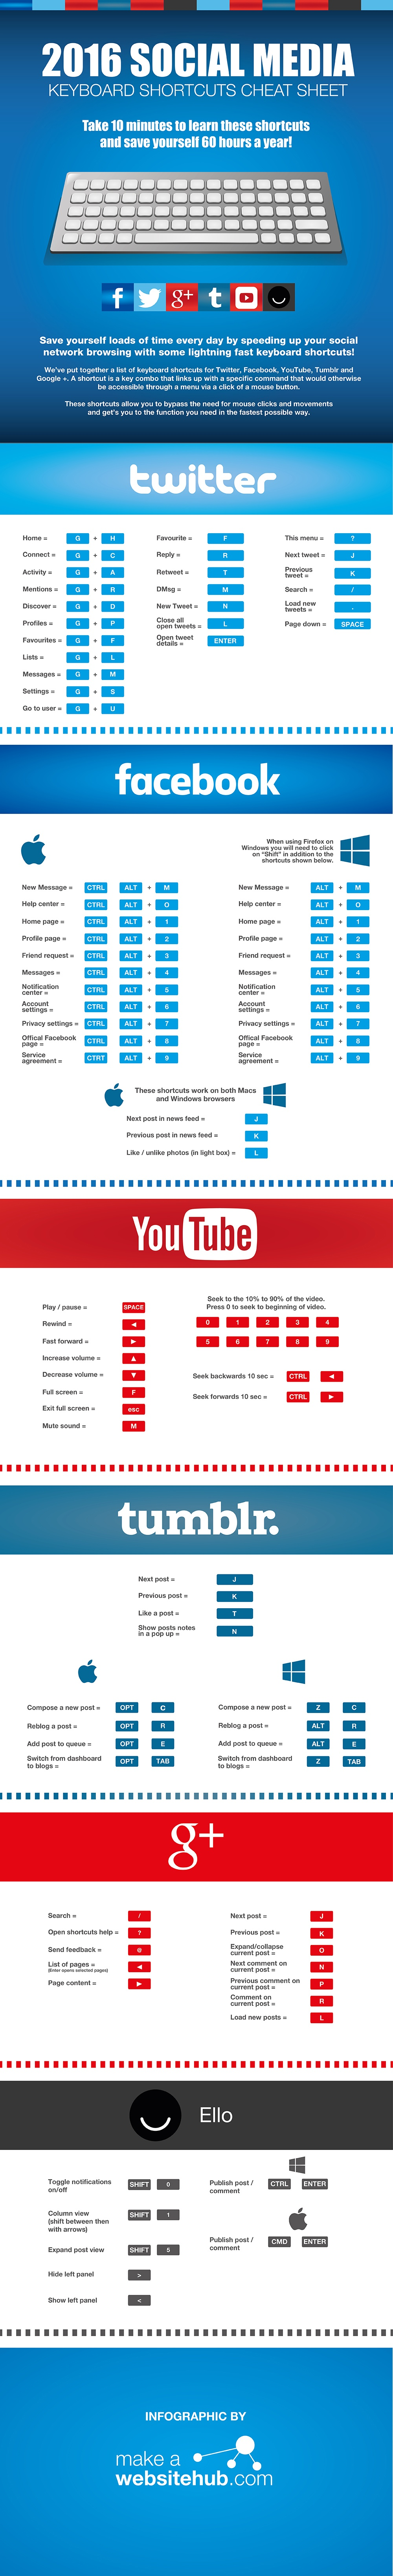 infographie-raccourcis-clavier-social-media-2016 (1)